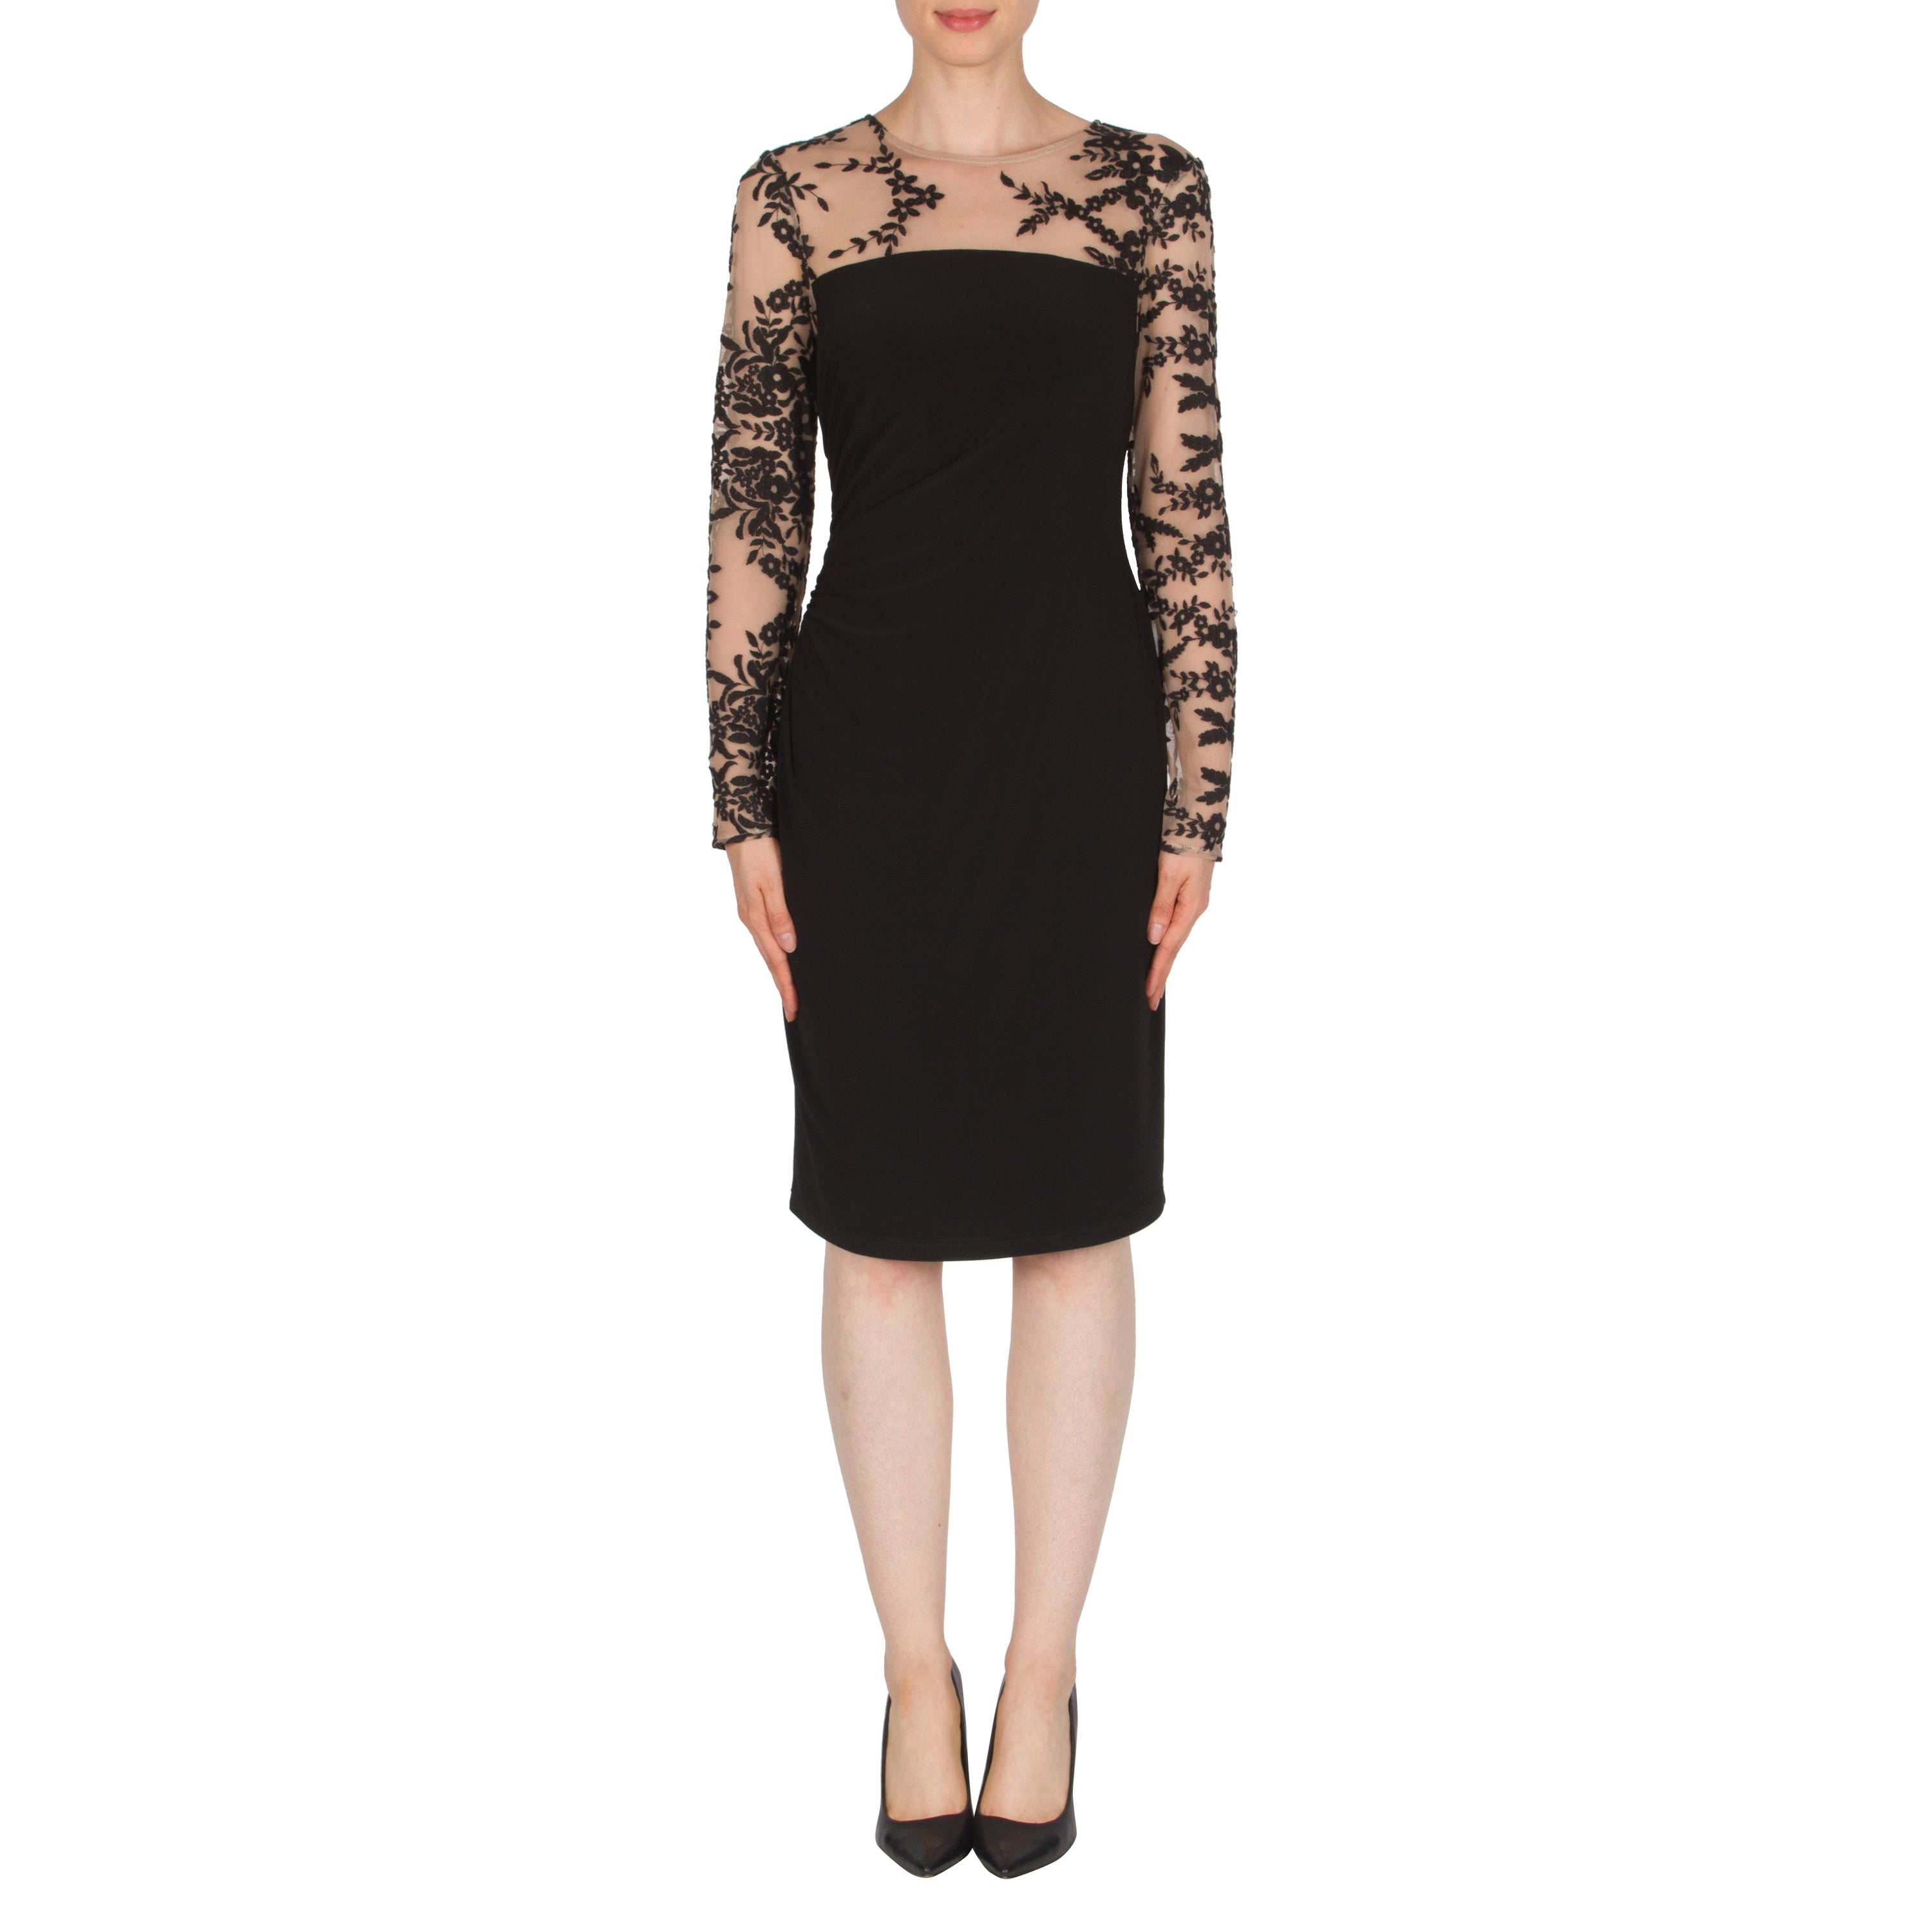 25df81c2ce Joseph Ribkoff 174520 Lace Slve Dress - Villique ...